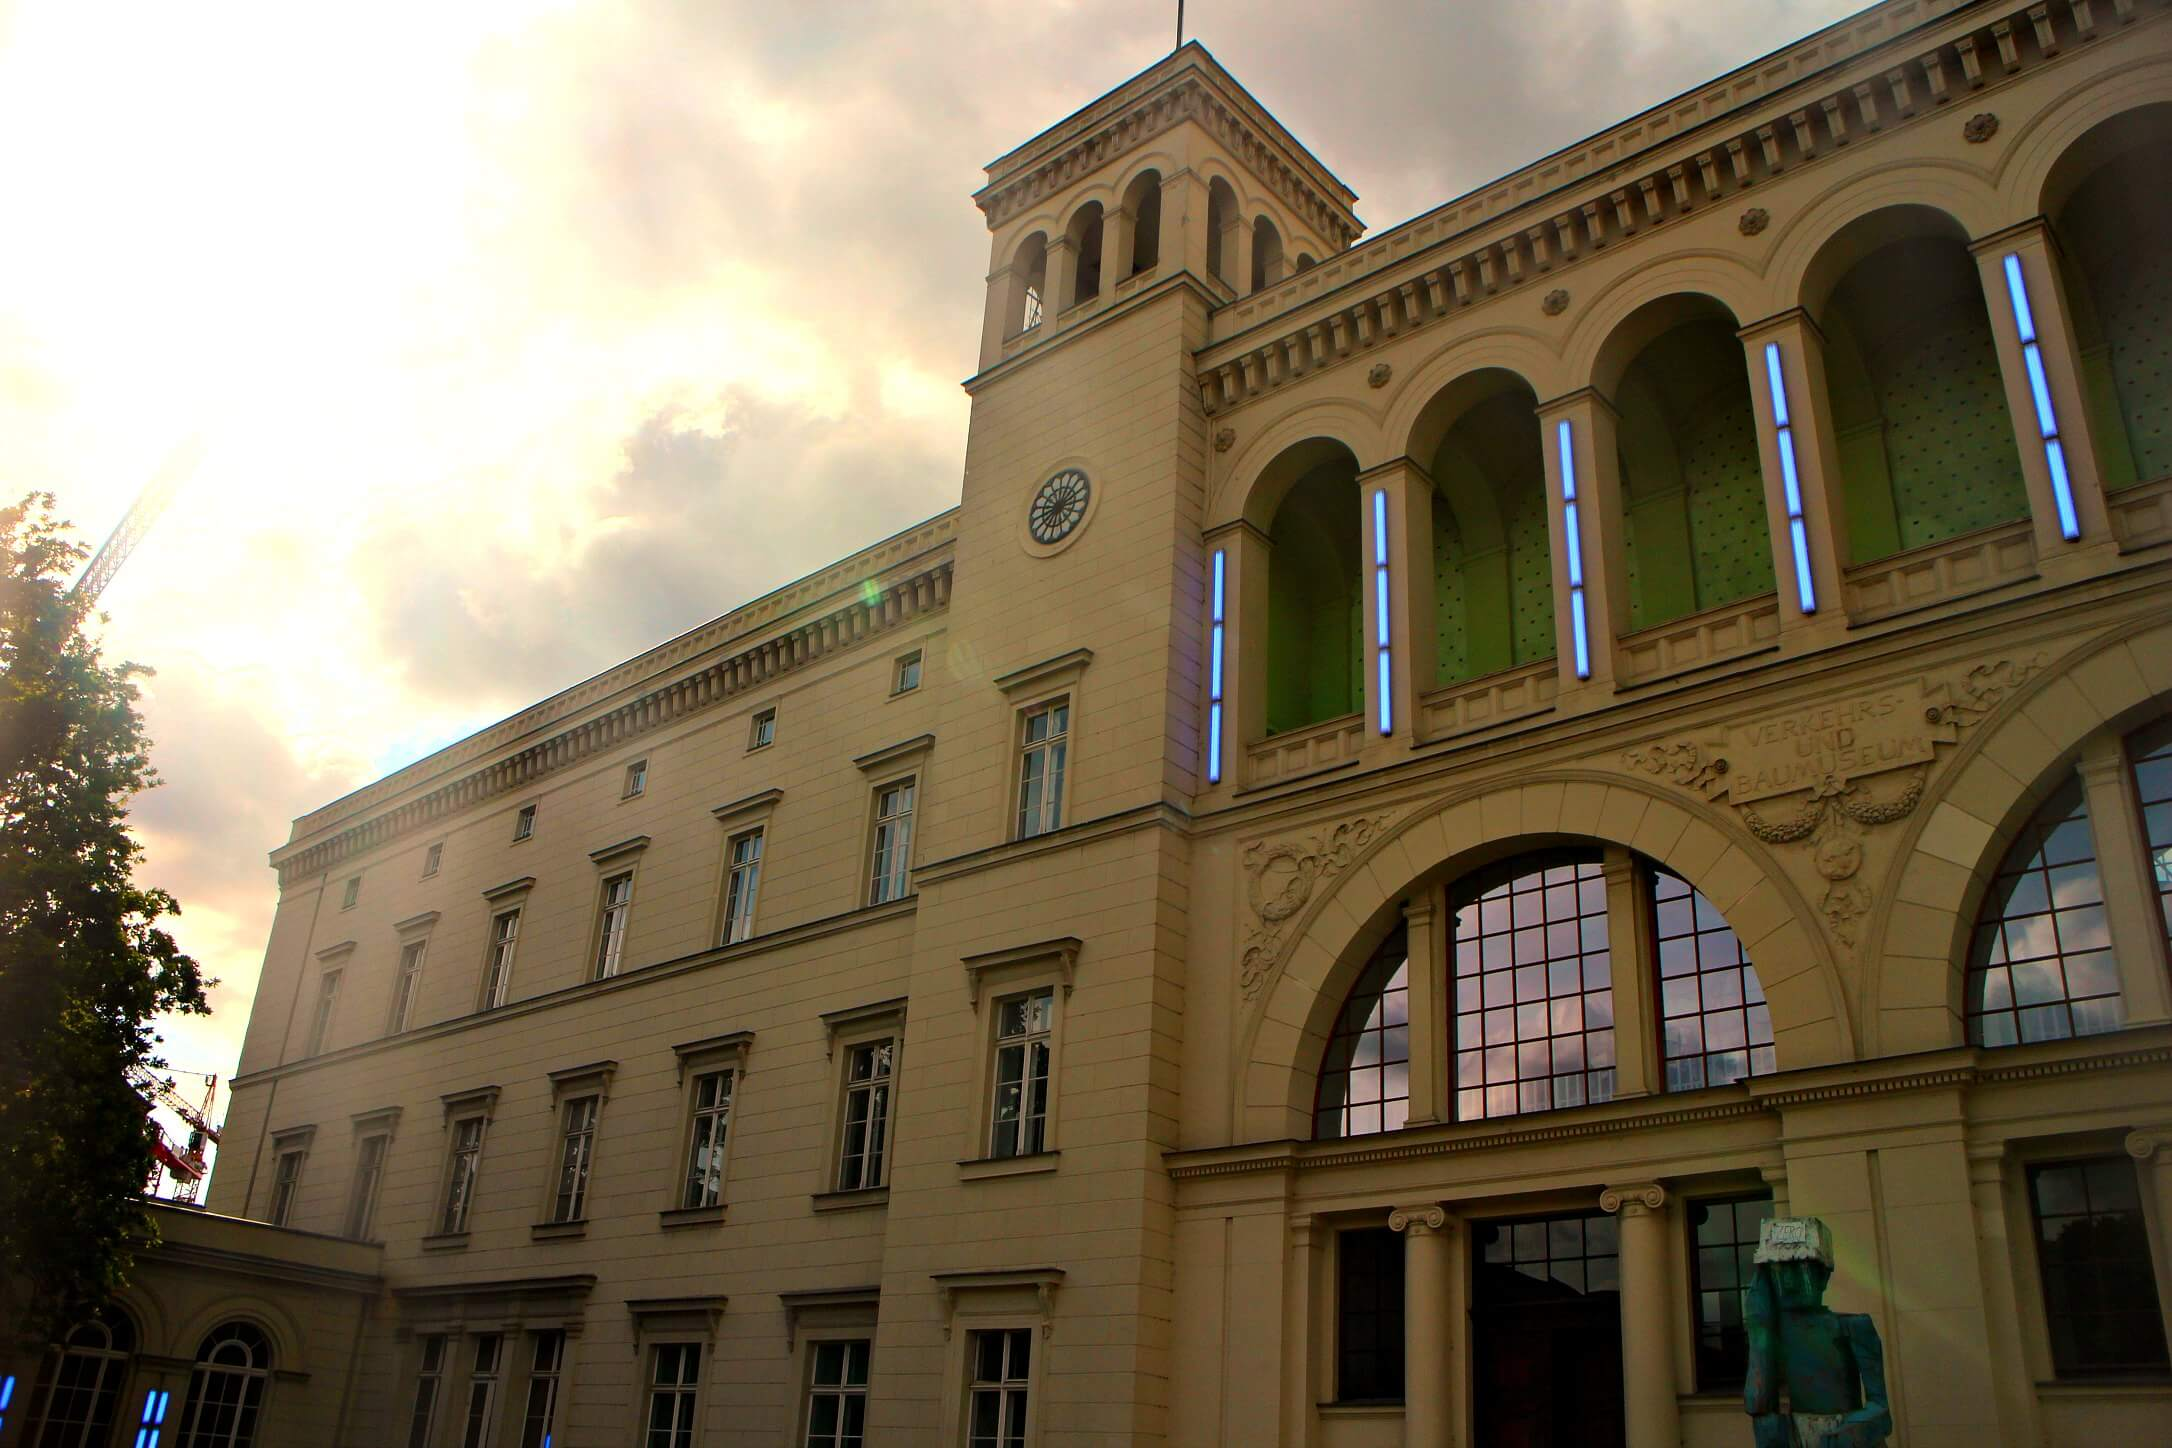 Hamburger Bahnhof station